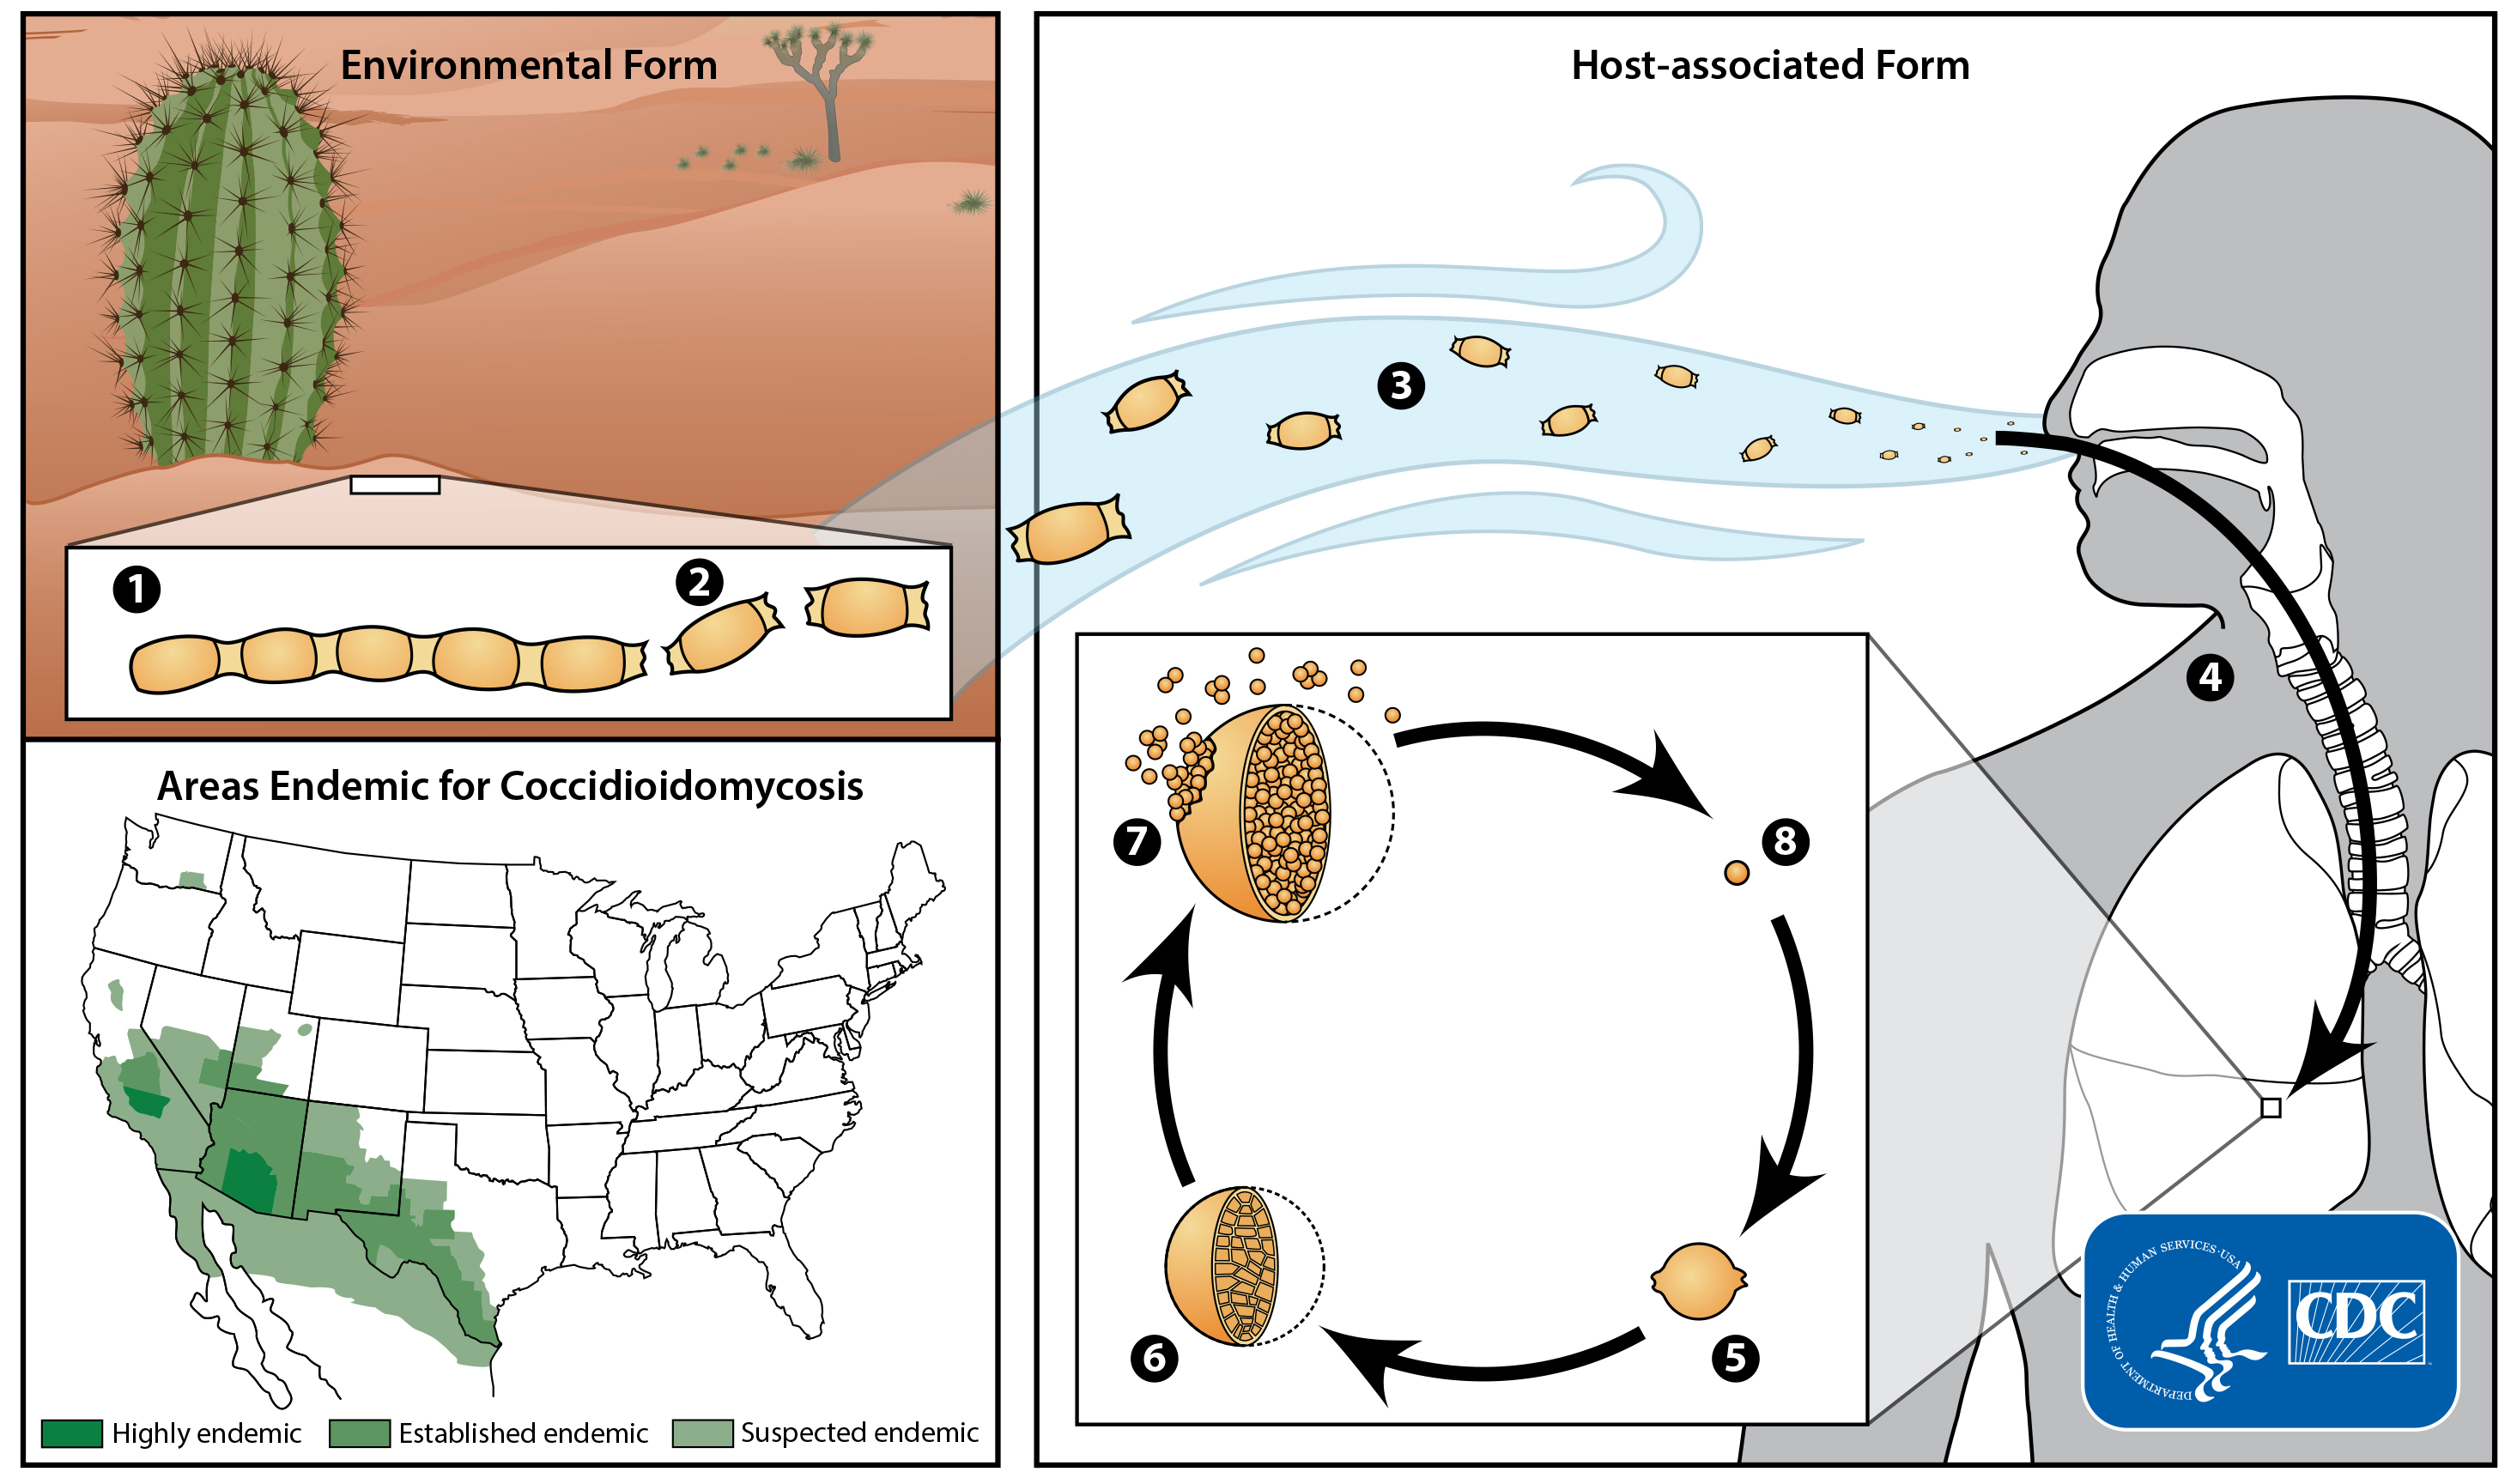 Image showing the lifecycle of the Coccidioides fungus and areas where it is common in the United States